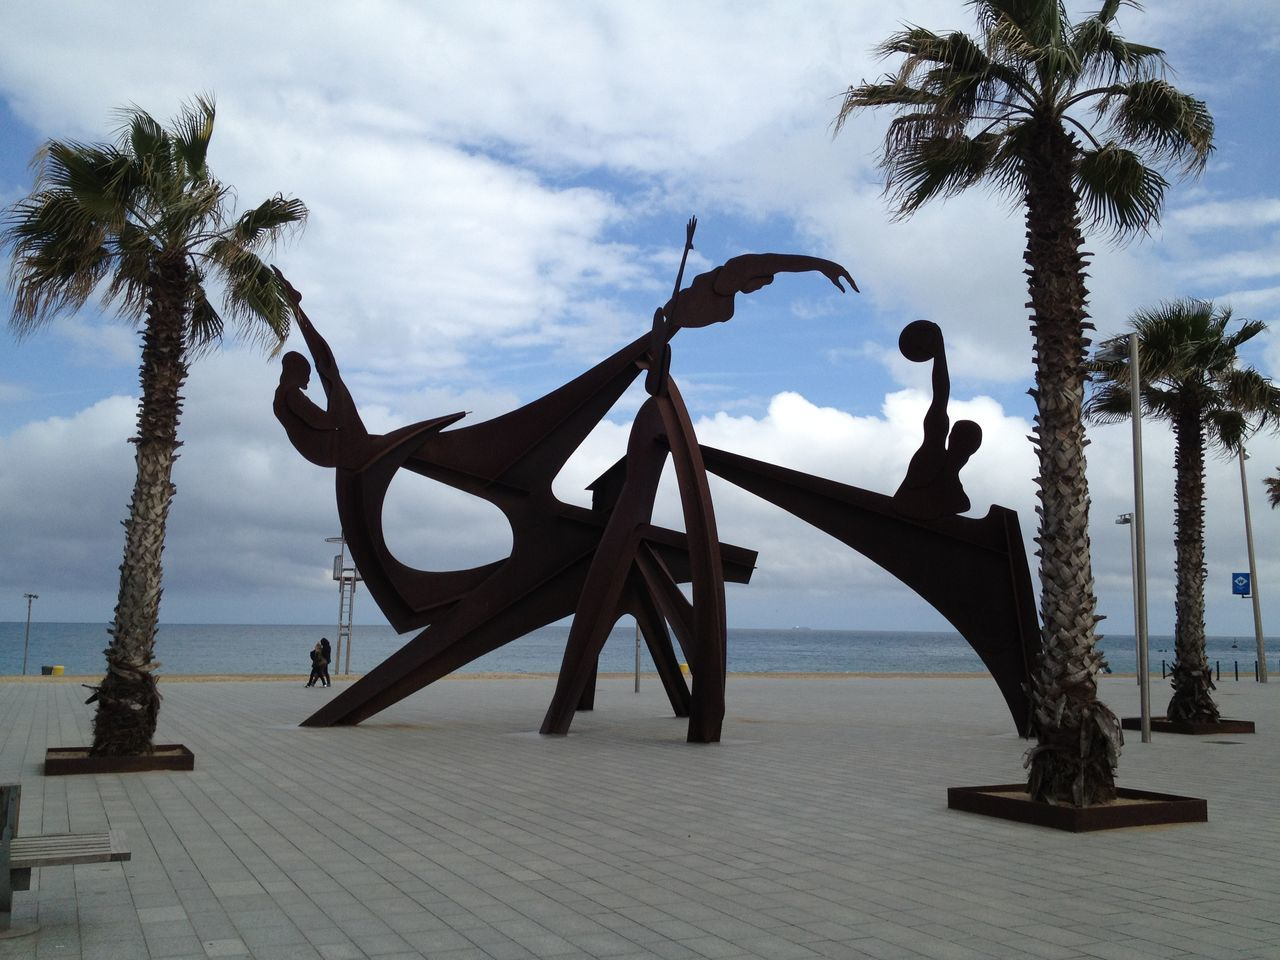 BARCELONA PORT Beach Cloud - Sky Cubism Cubismo Day Horizon Over Water Modern Street Ar Nature No People Outdoor Art Outdoor Photography Outdoors Palm Tree Pavement Sand Sculpture Sea Seaside Art Sculpture Sky Street Street Art Tree Vacations Water